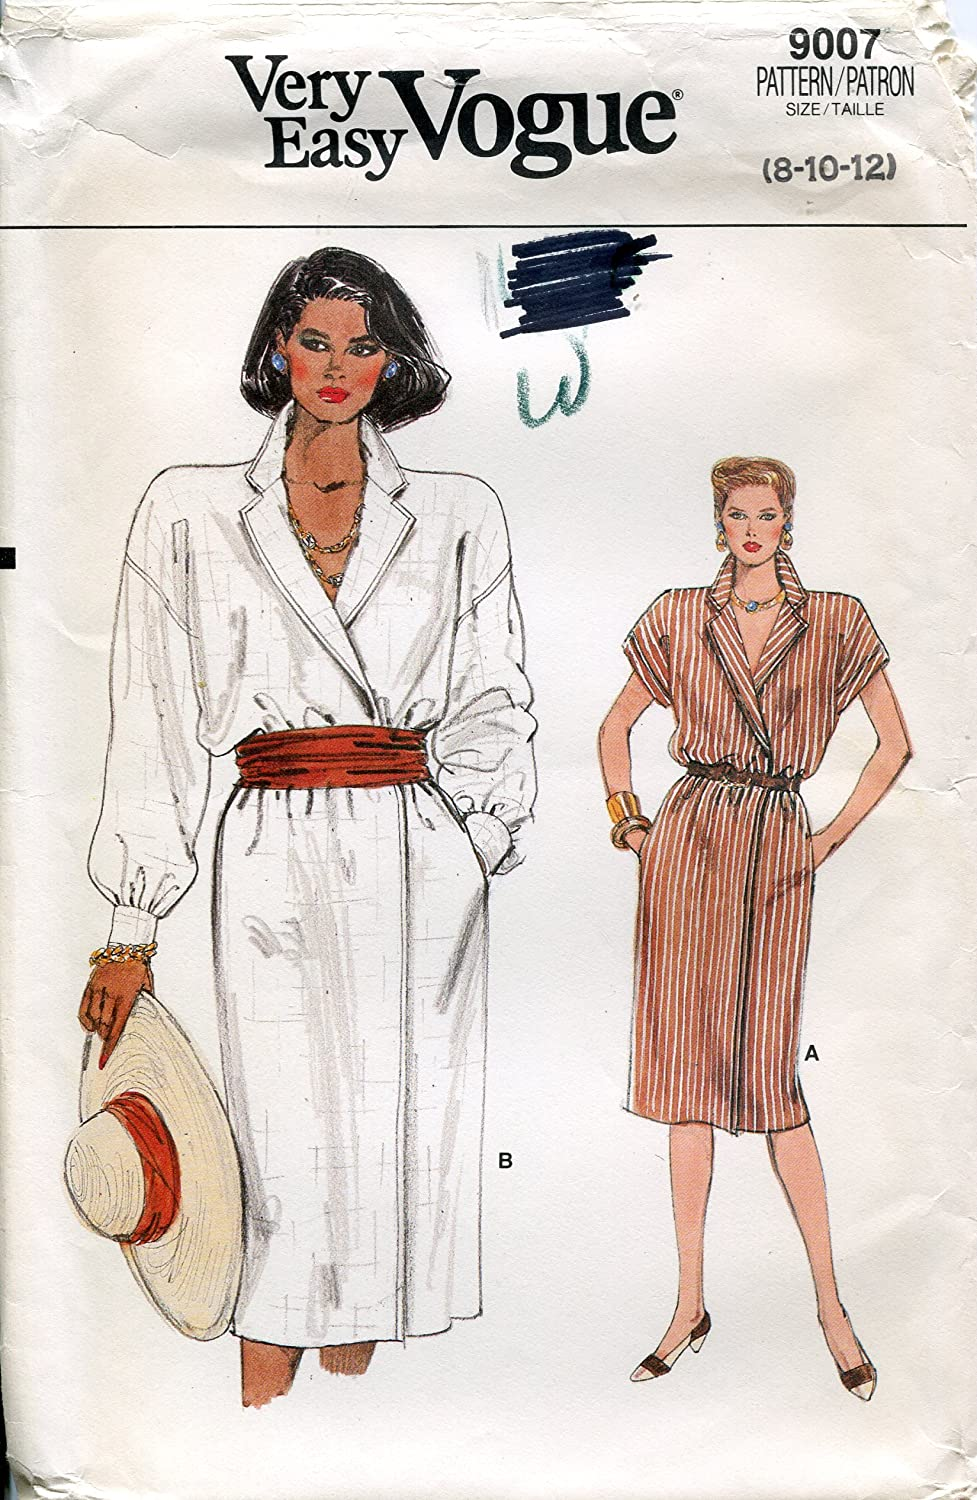 Very Easy Vogue Pattern 9007 Misses' Shirt Dress, Sizes 8-10-12